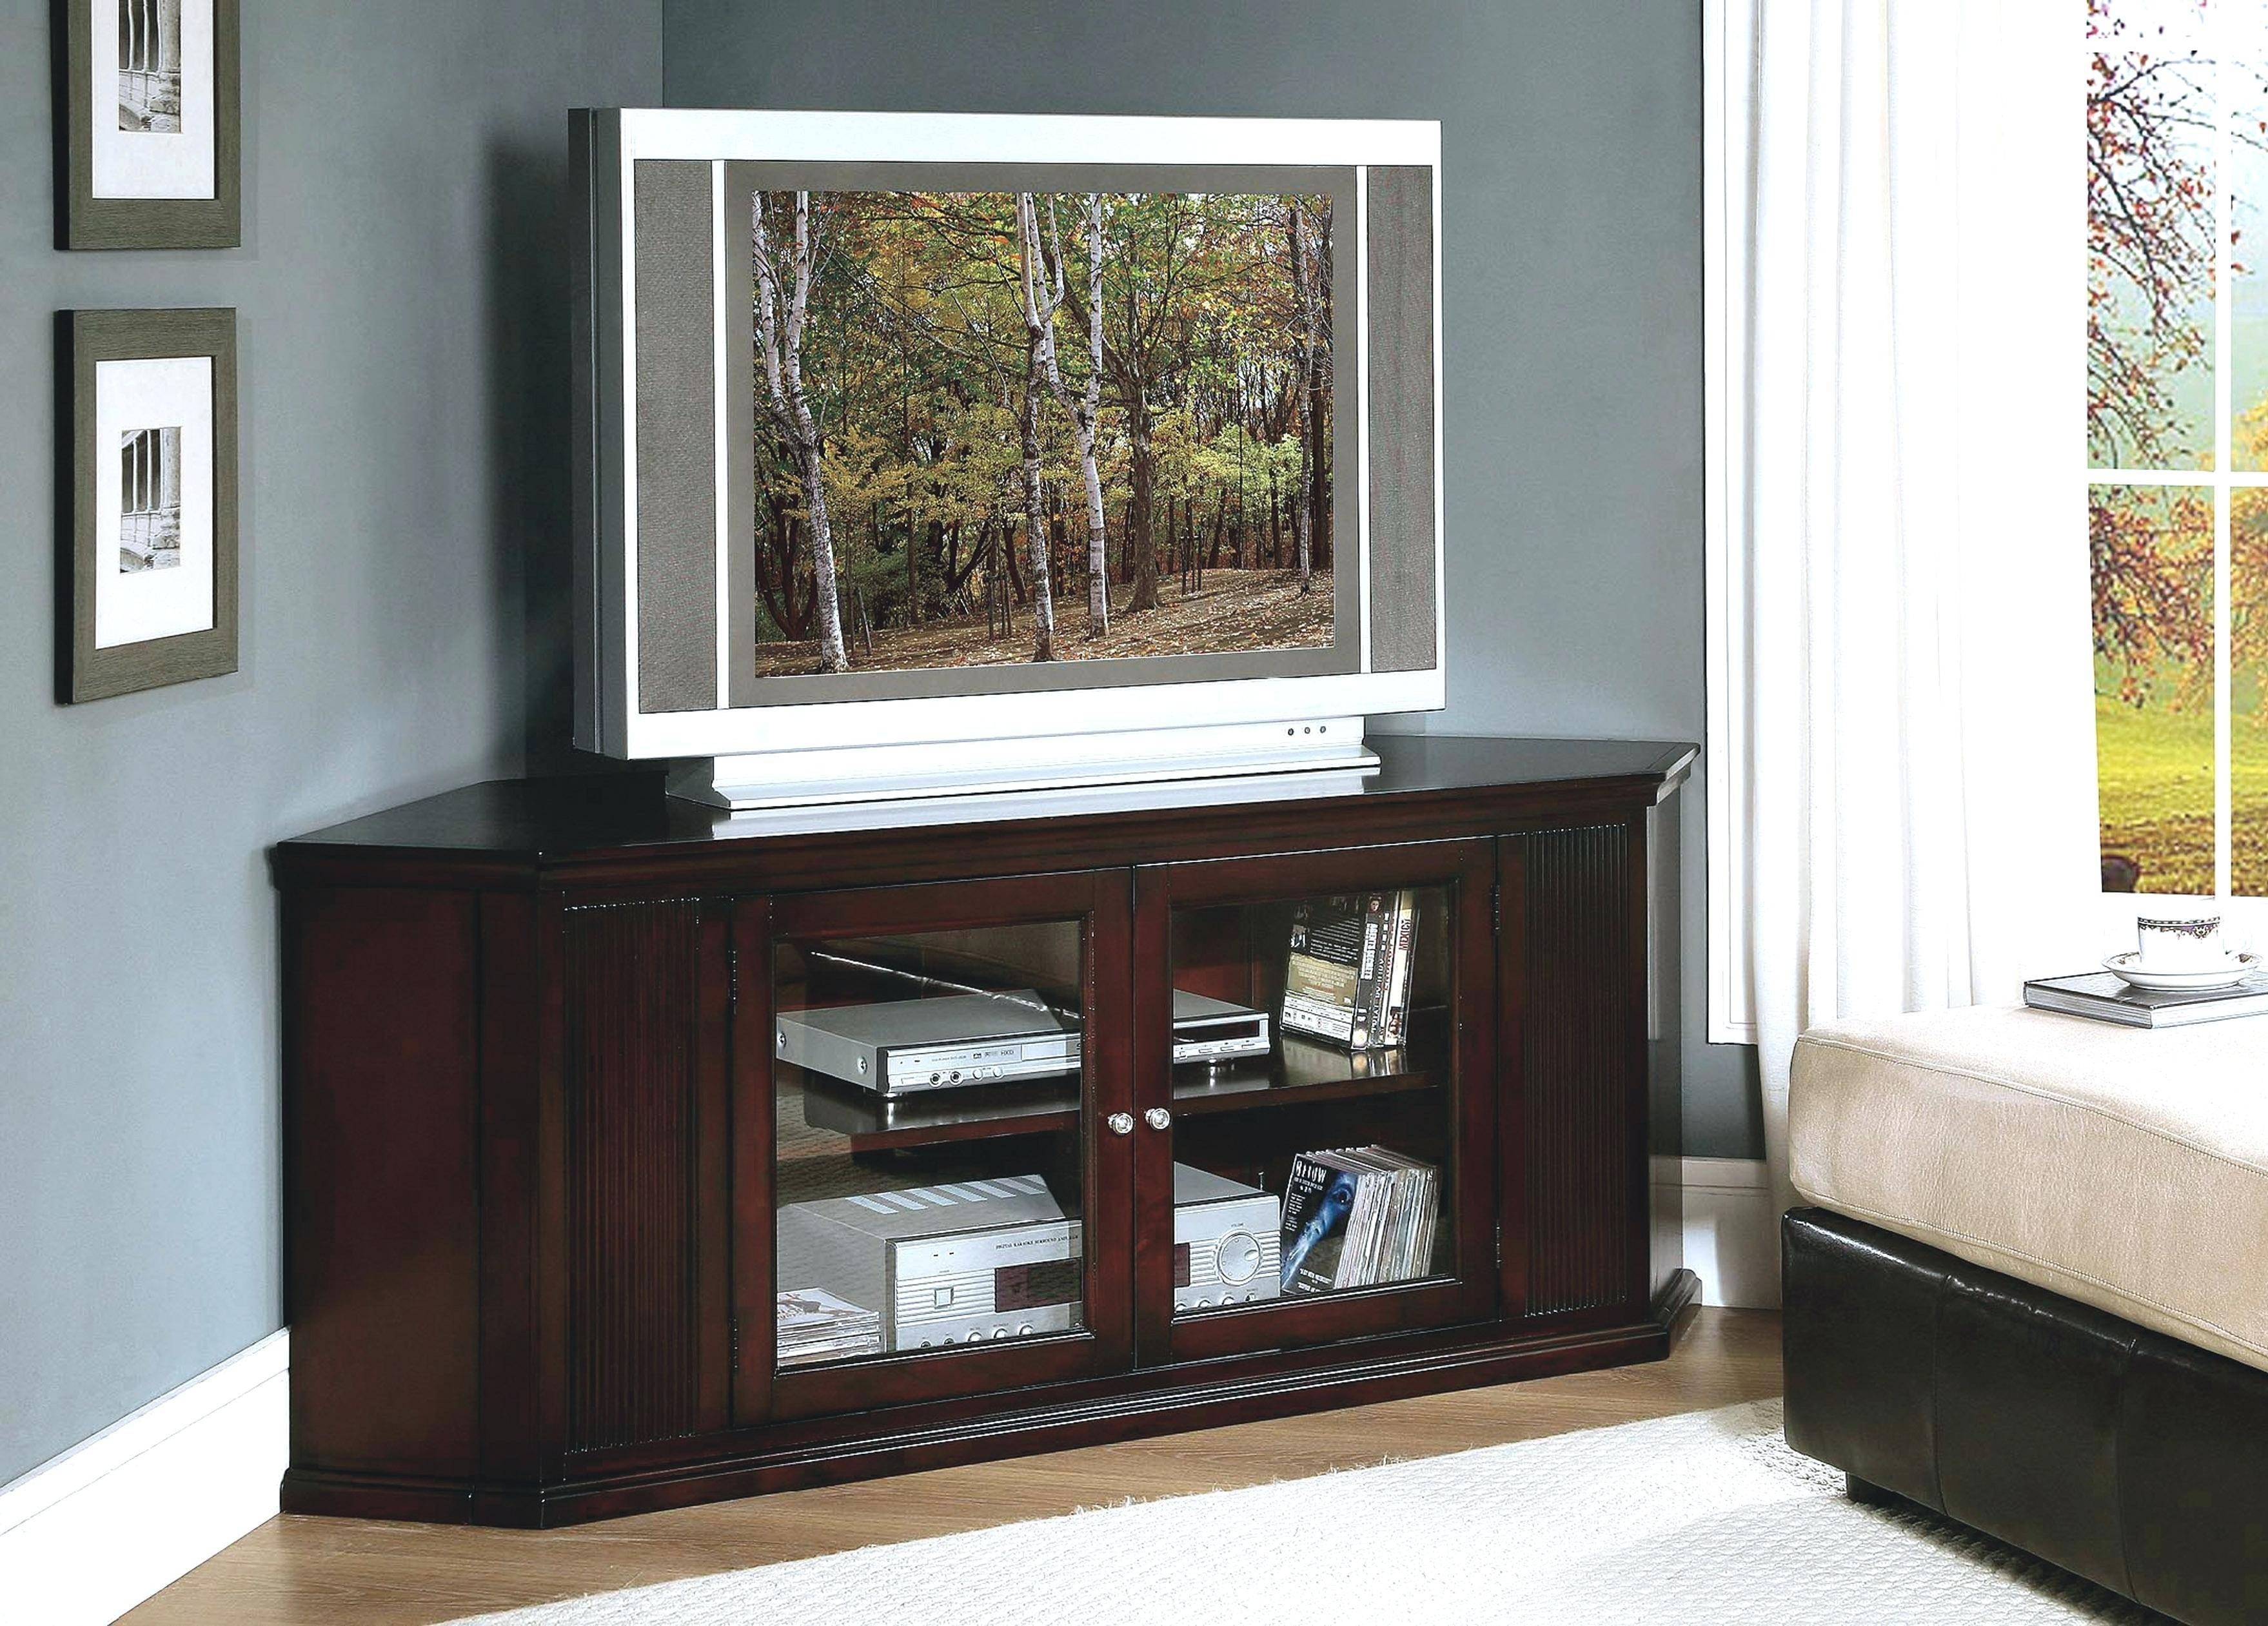 Tv Stand : Gorgeous Oak Gallery Picture Fascinating Tall Corner Tv For Corner Tv Cabinets For Flat Screens With Doors (View 13 of 15)